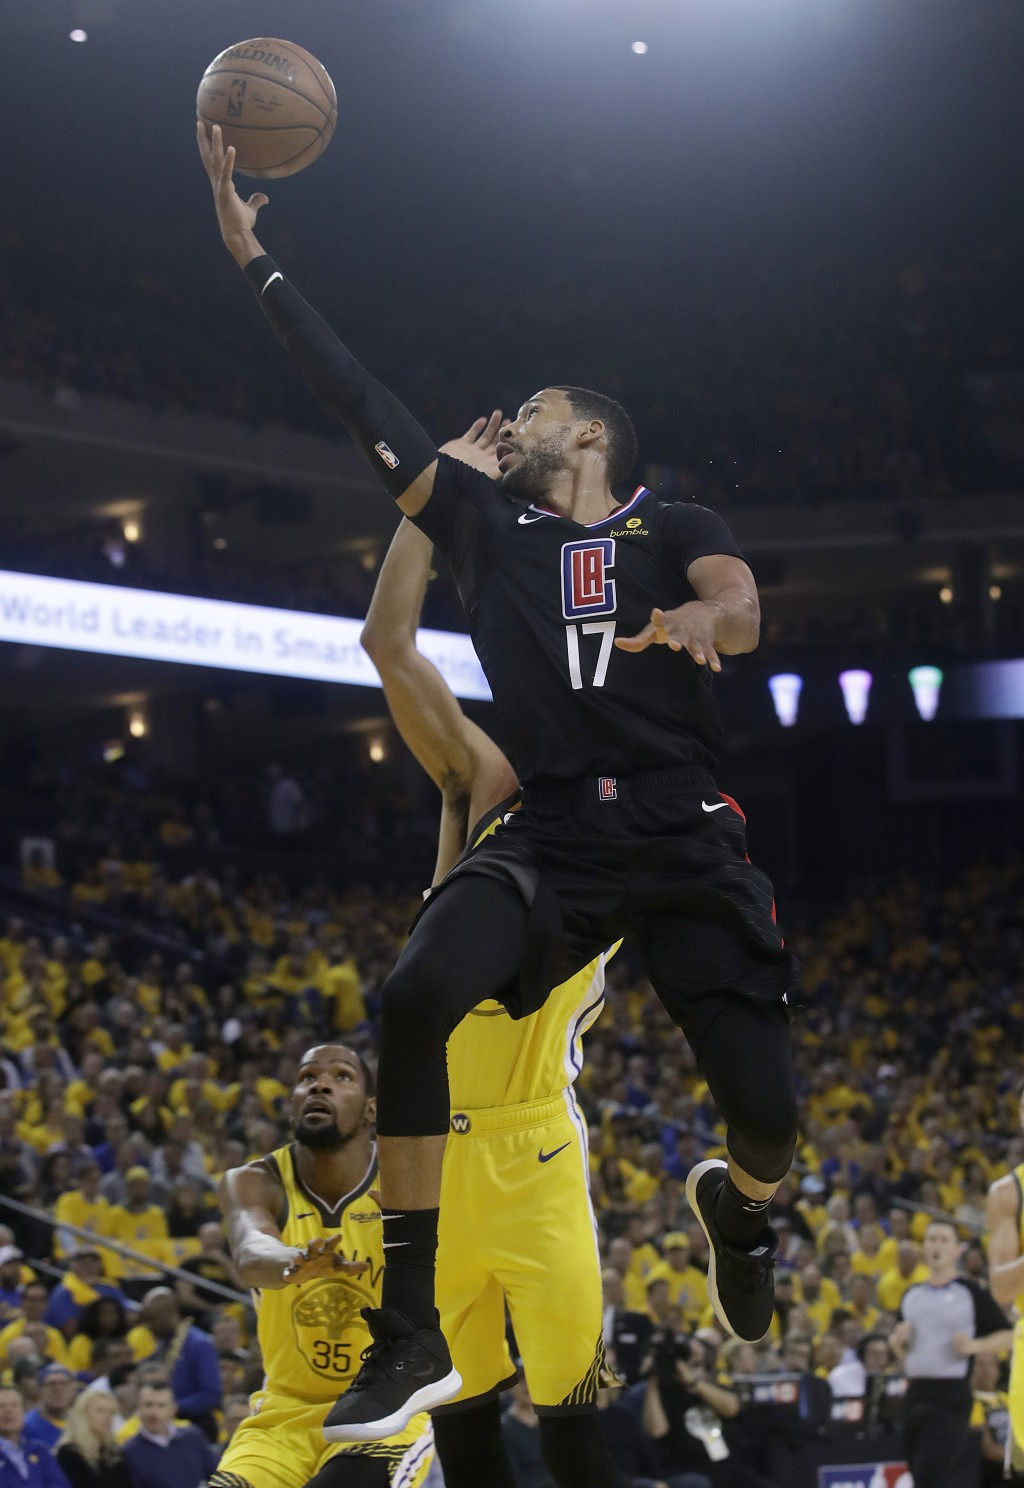 Los Angeles Clippers guard Garrett Temple (17) shoots against the Golden State Warriors during the first half of Game 2 of a first-round NBA basketbal